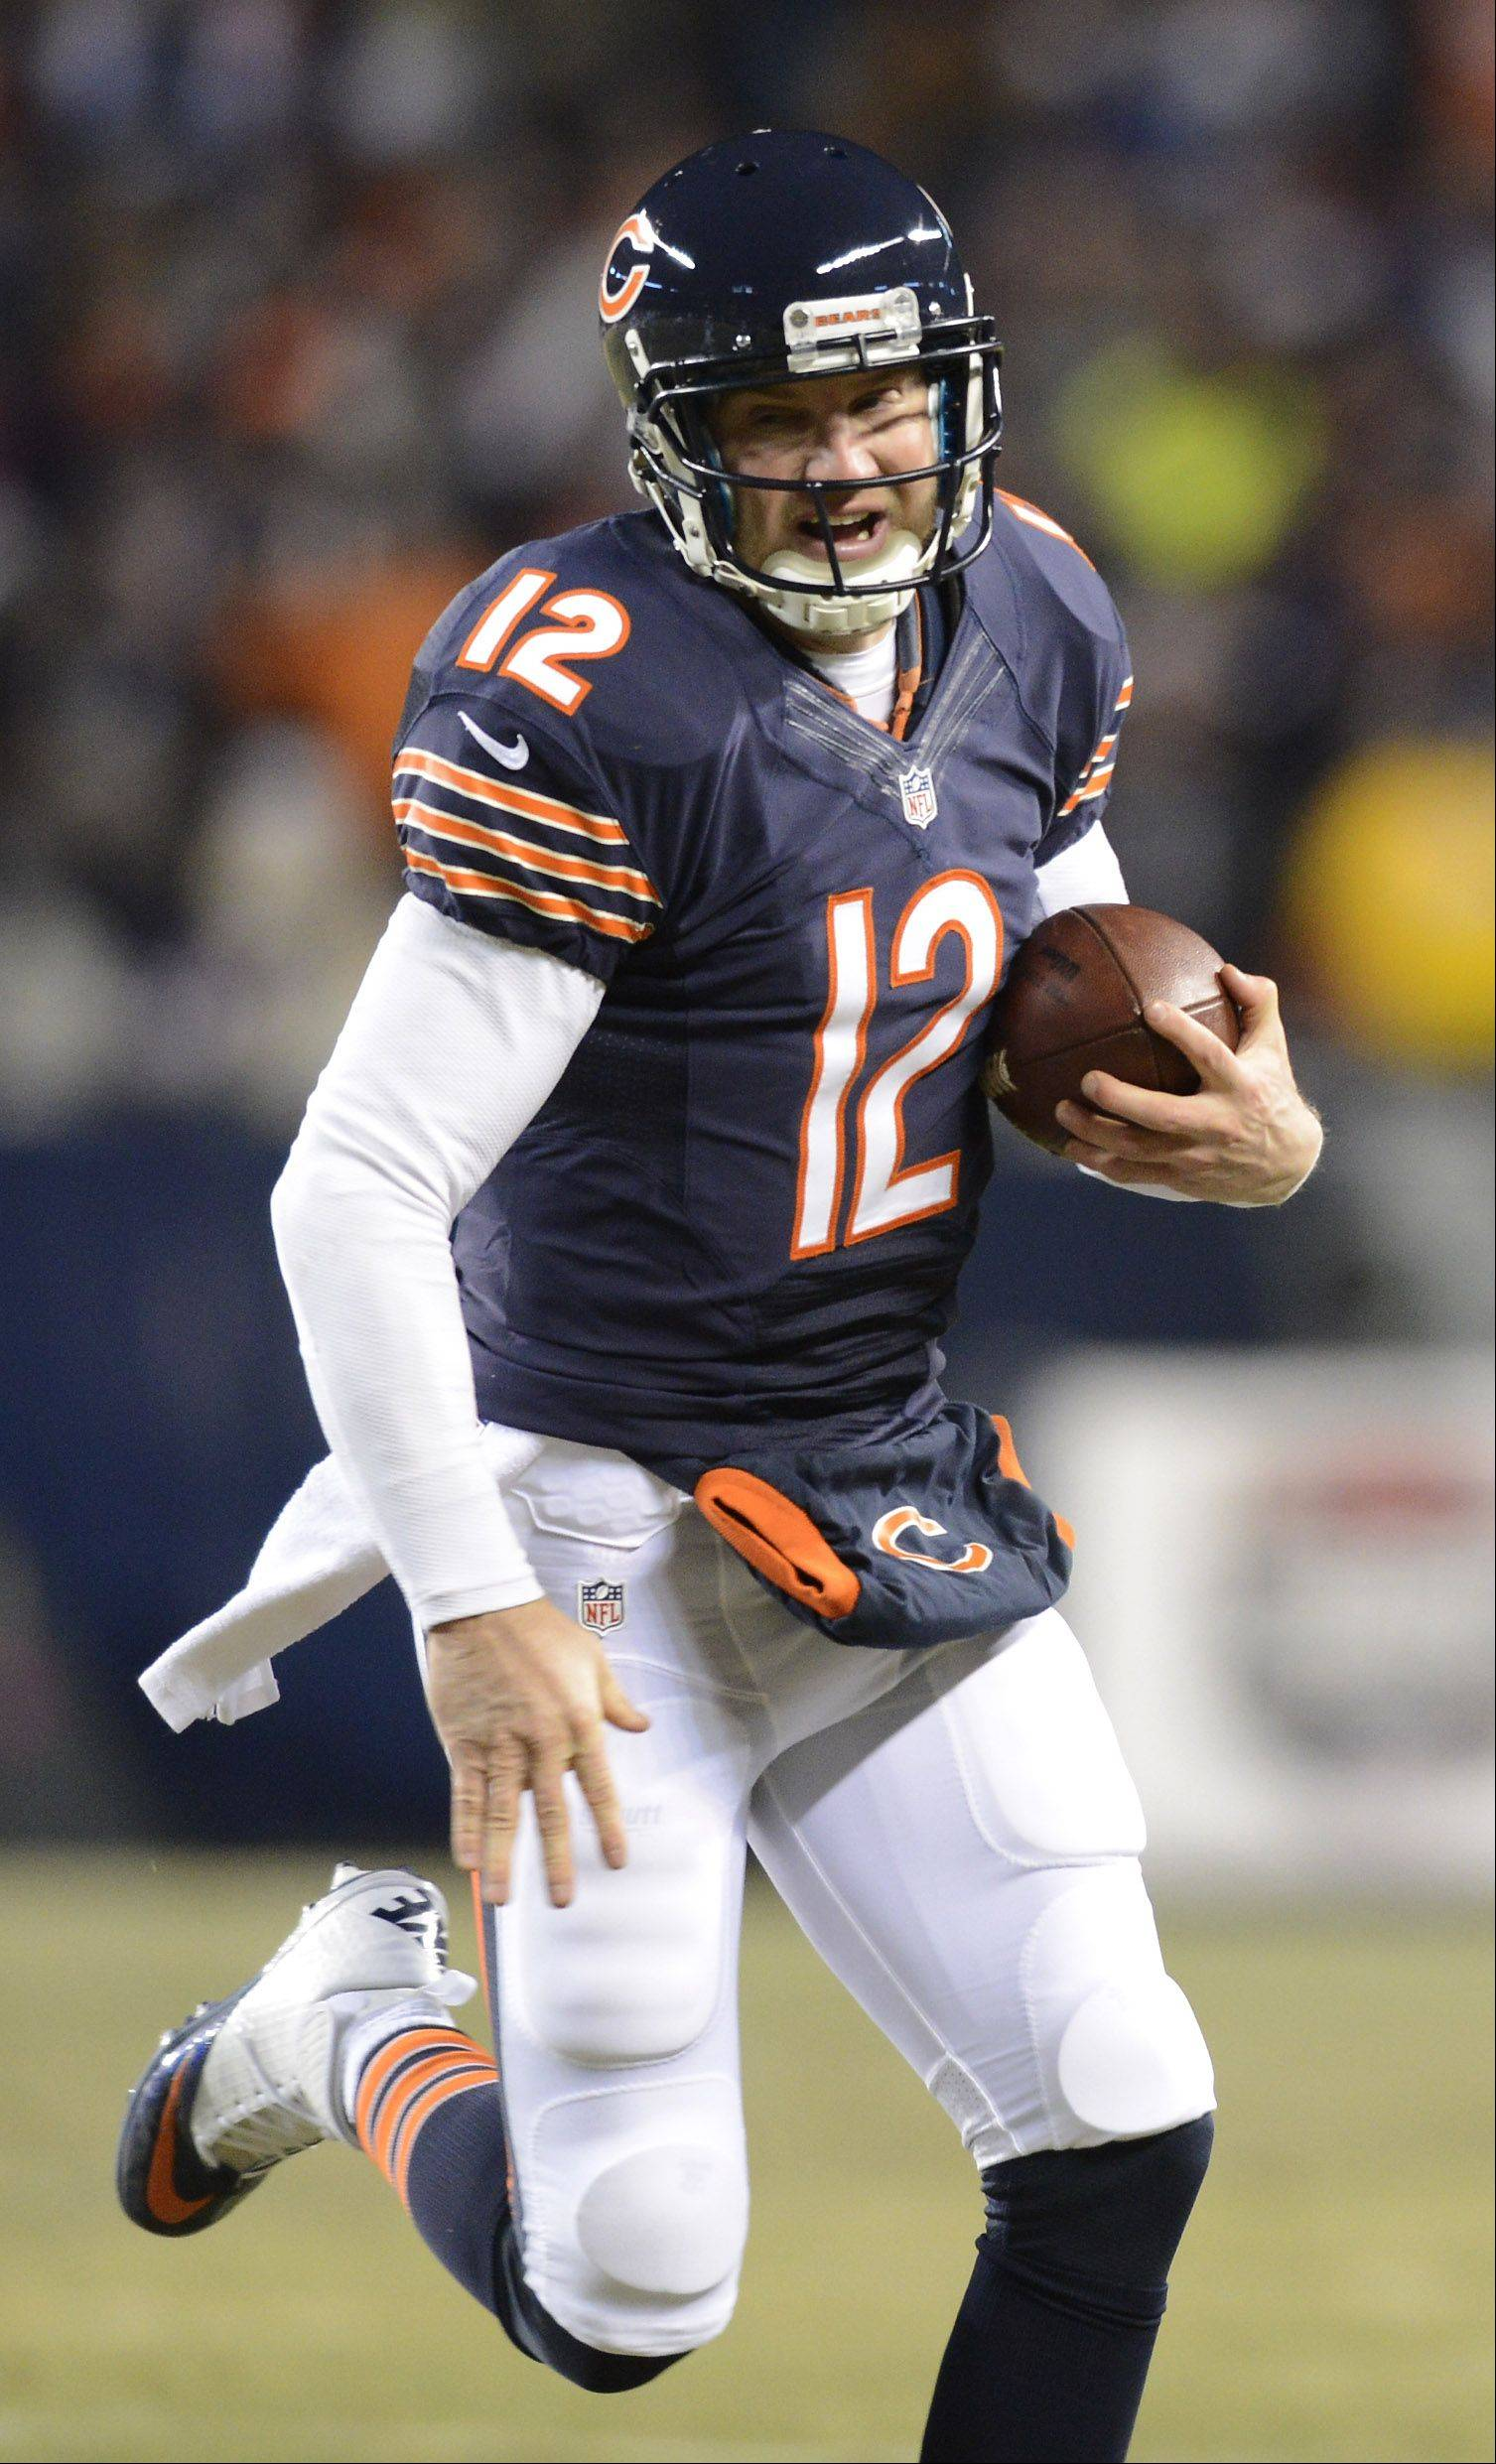 Maybe it's best not to mess with Bears' McCown